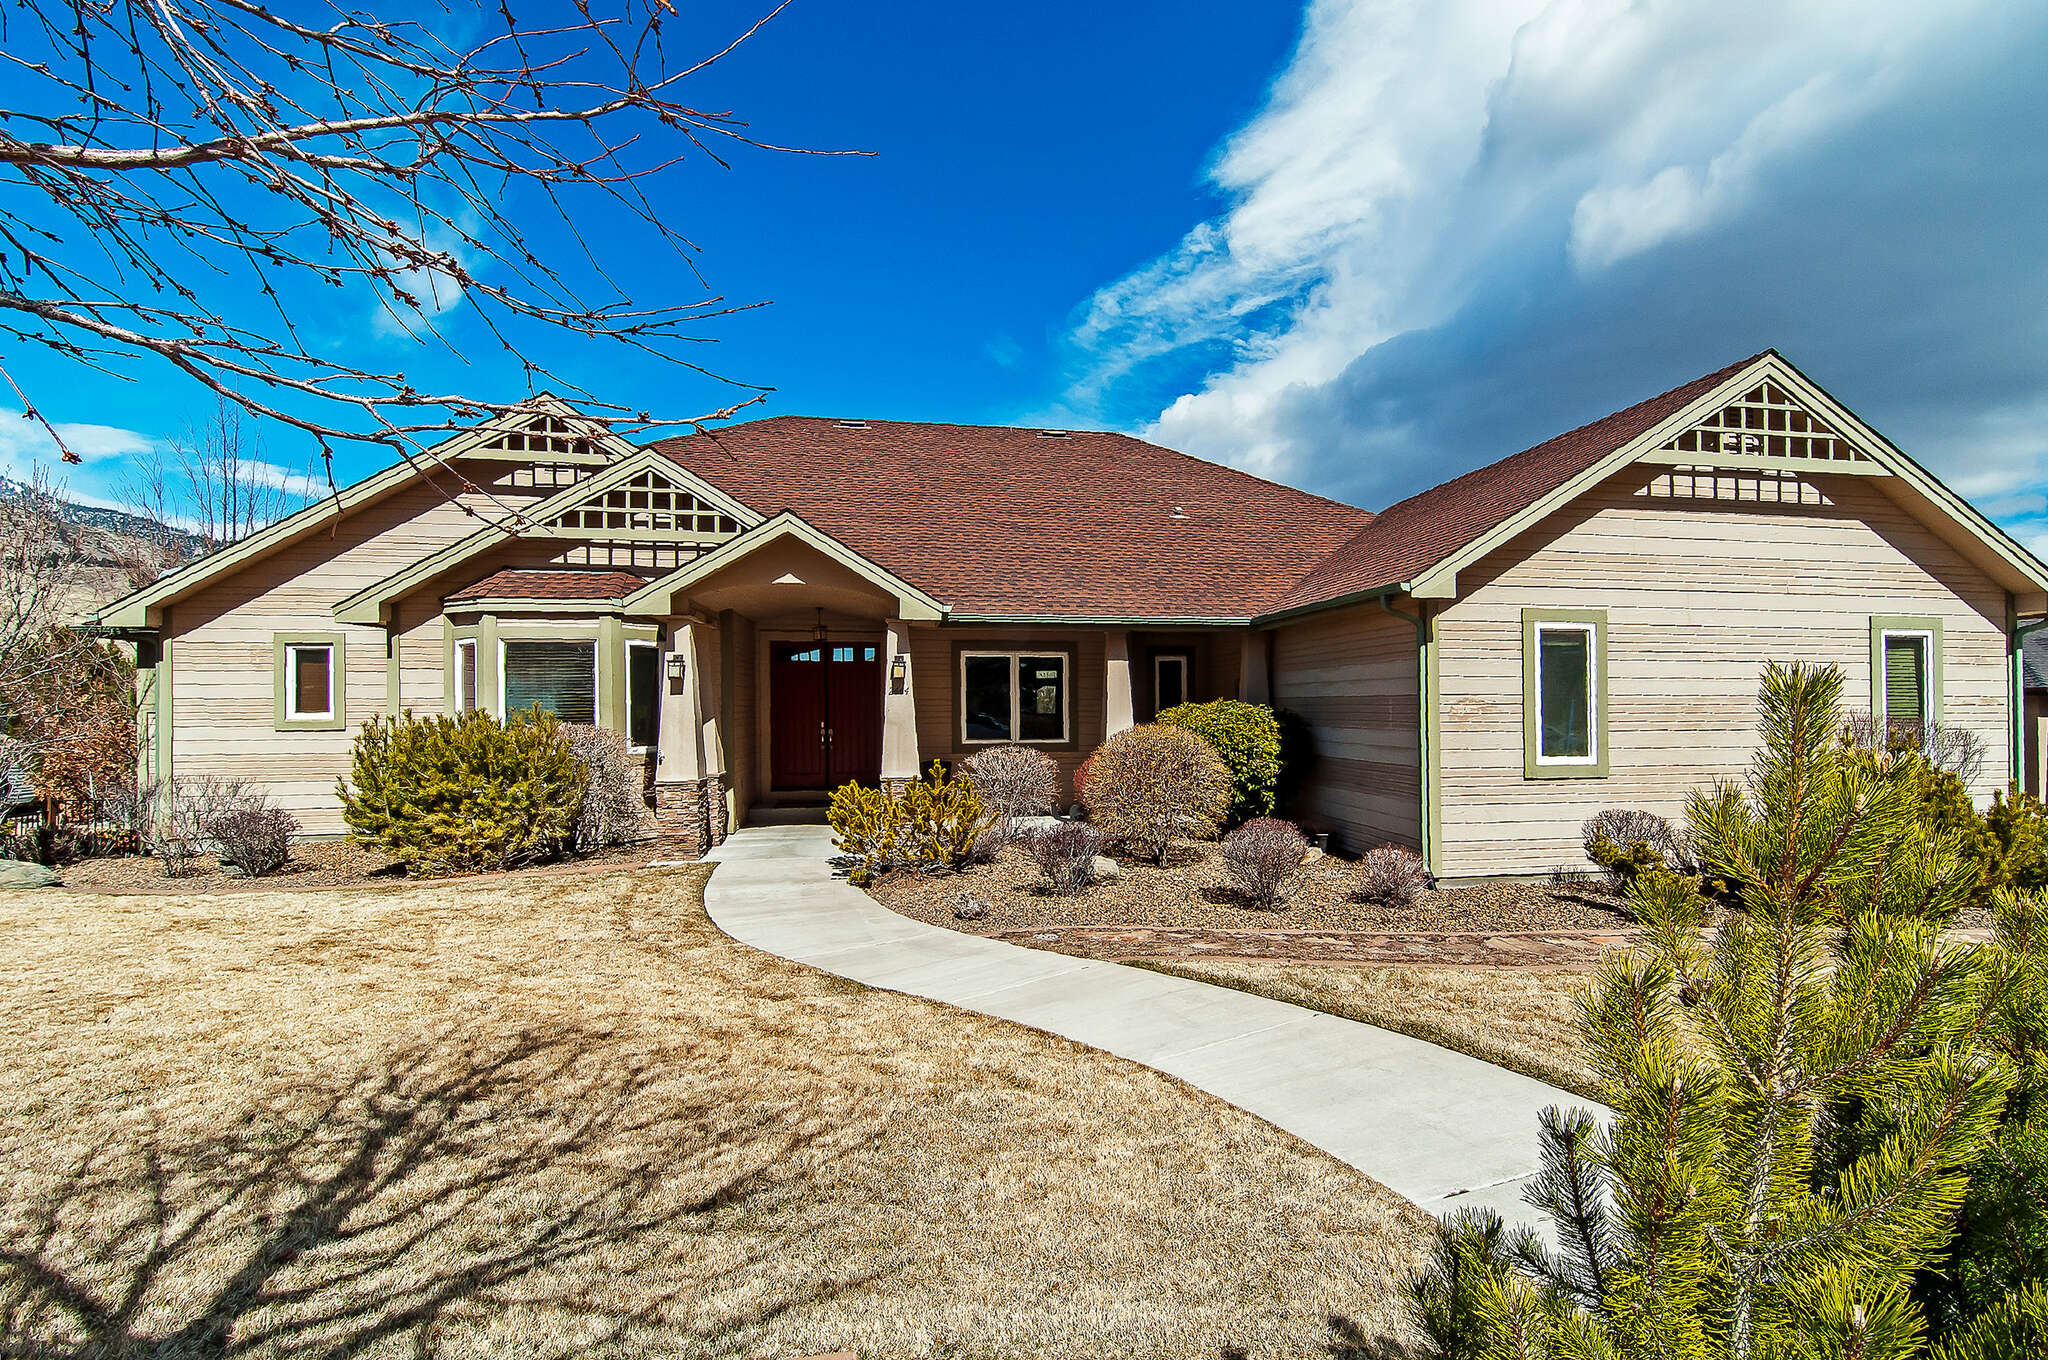 Single Family for Sale at 2444 Kingsview Way Carson City, Nevada 89703 United States